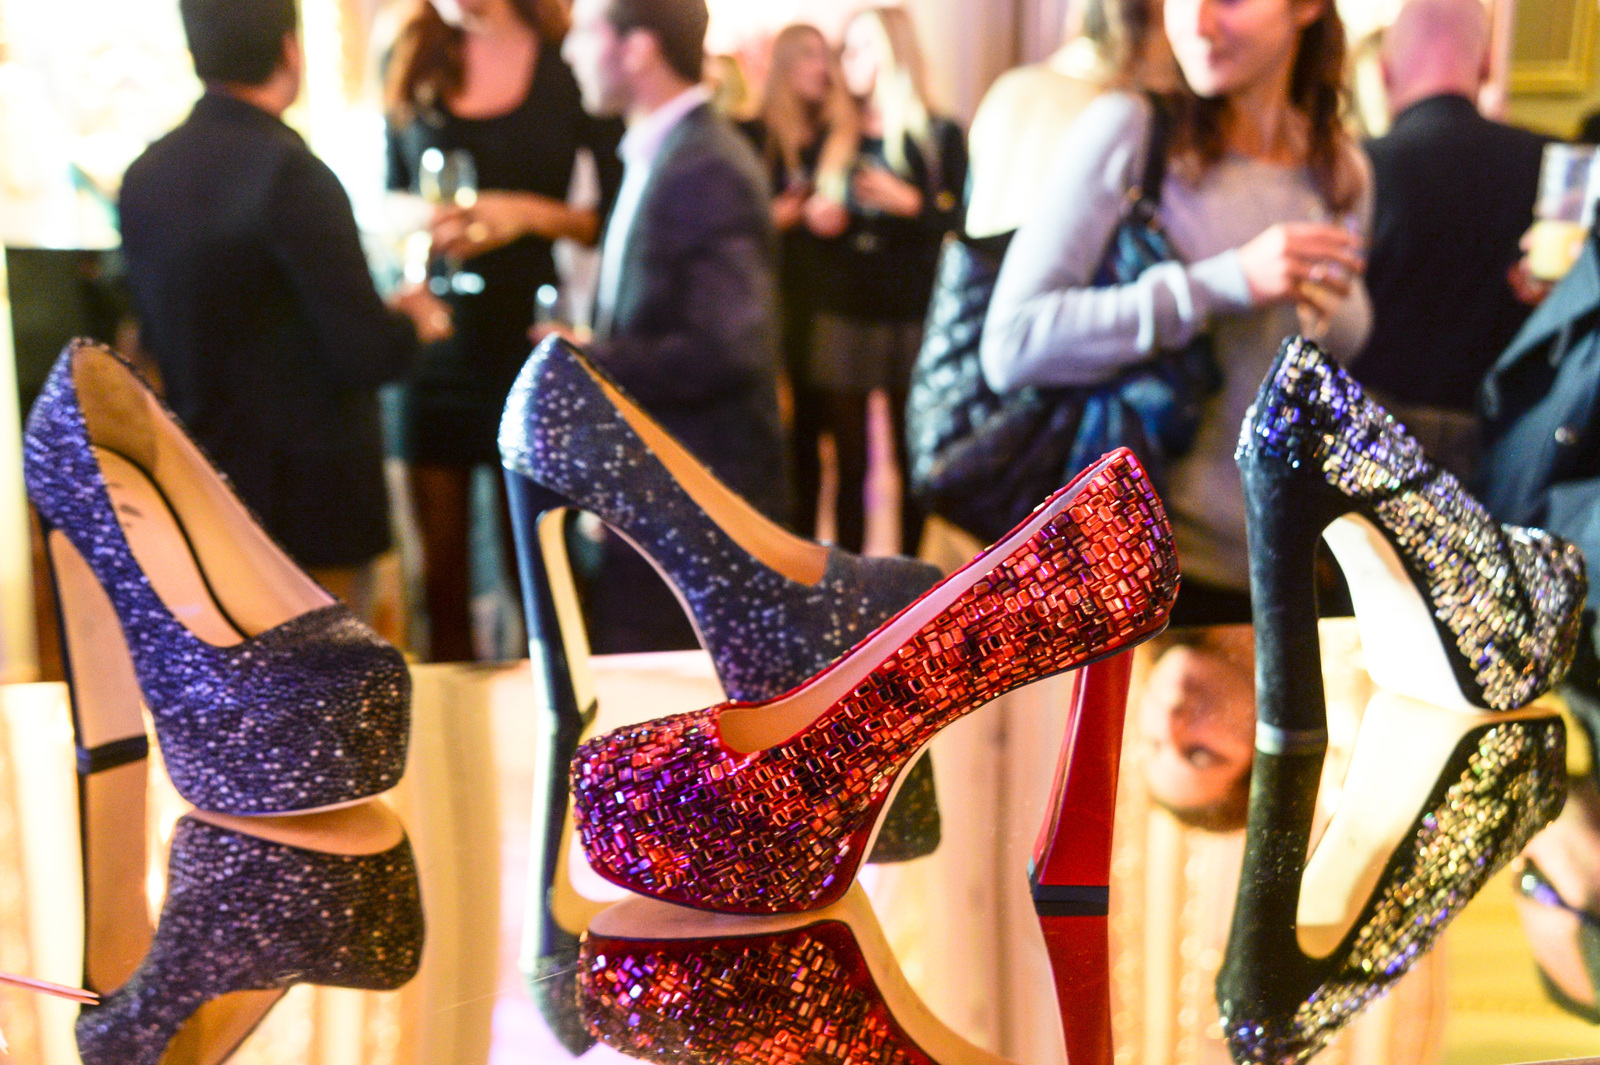 JULIA HAART Paris Fashion Week Exclusive Shoe Collection FW14